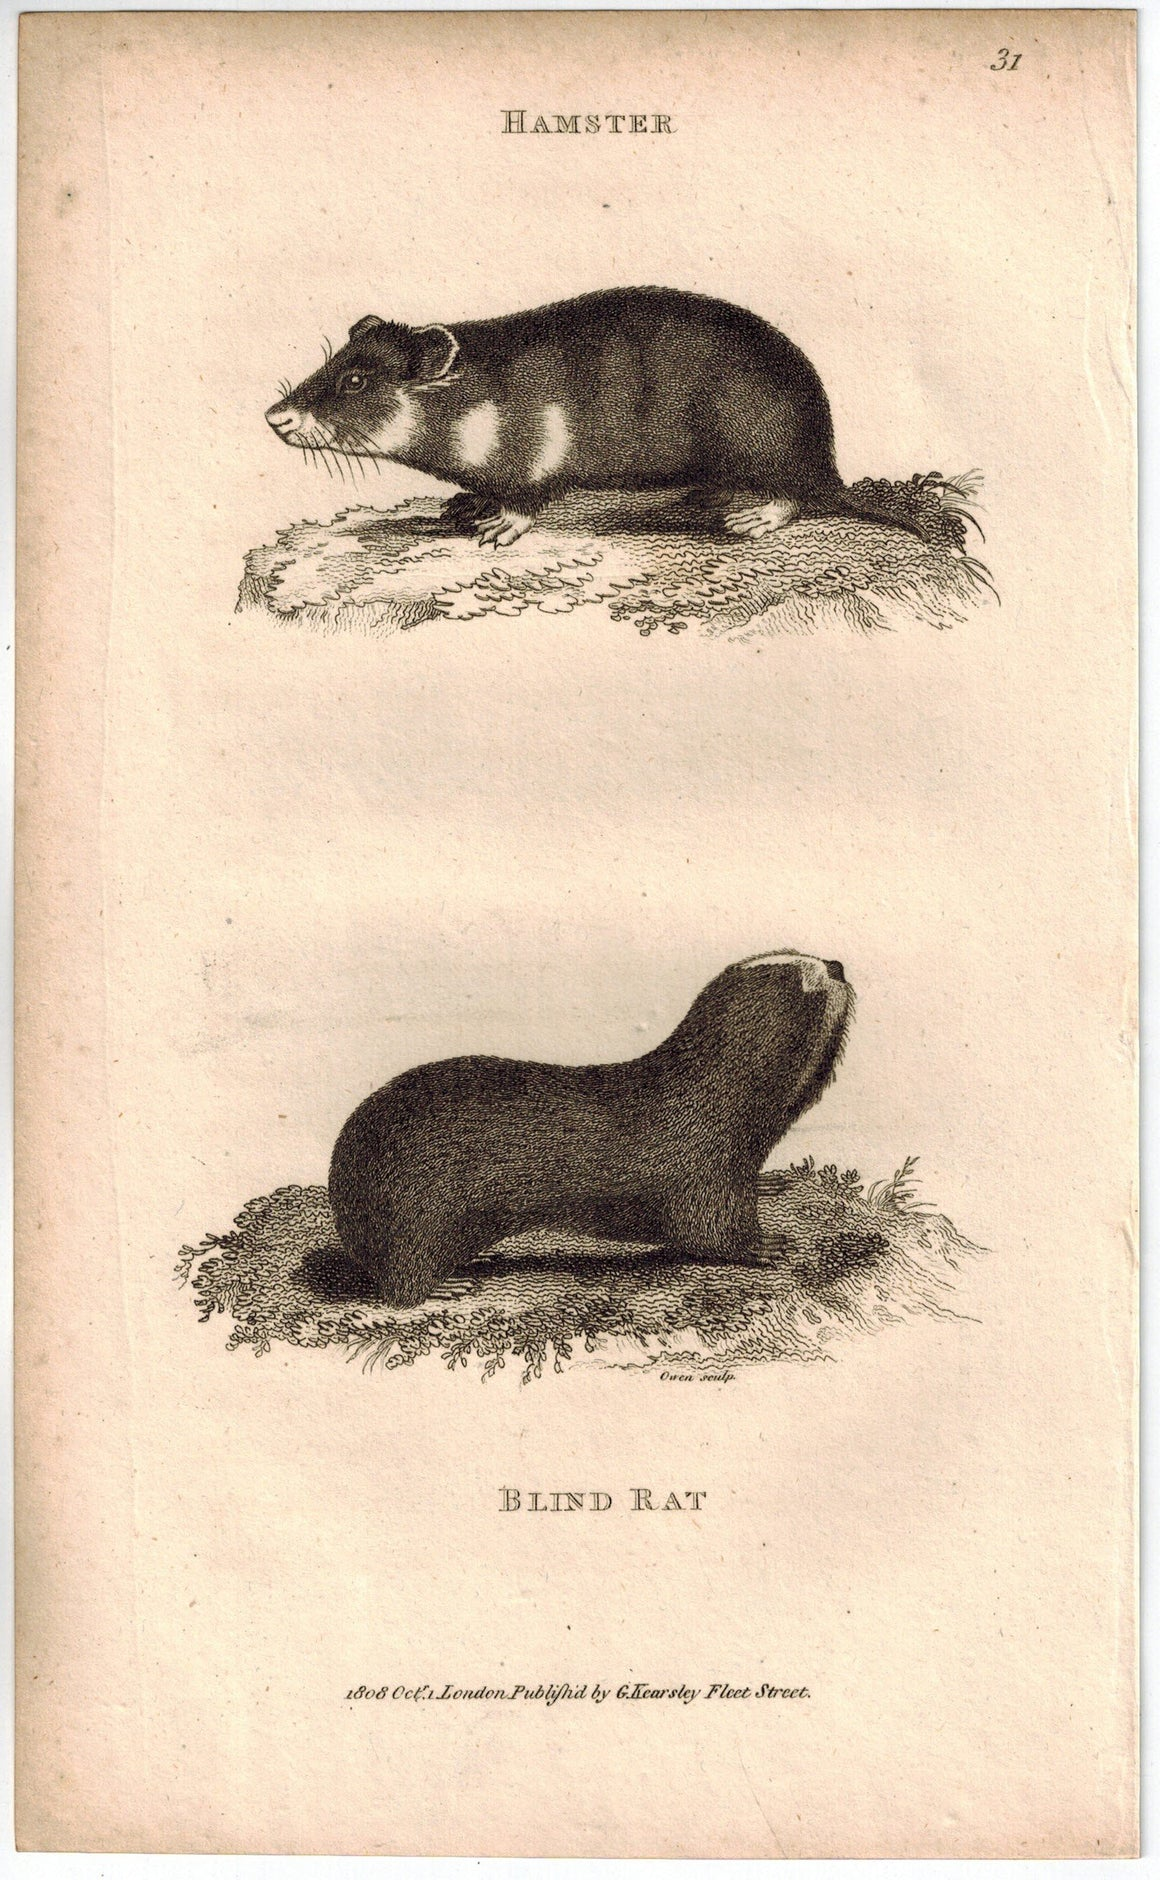 Blind Rat Print 1809 George Shaw Original Engraving